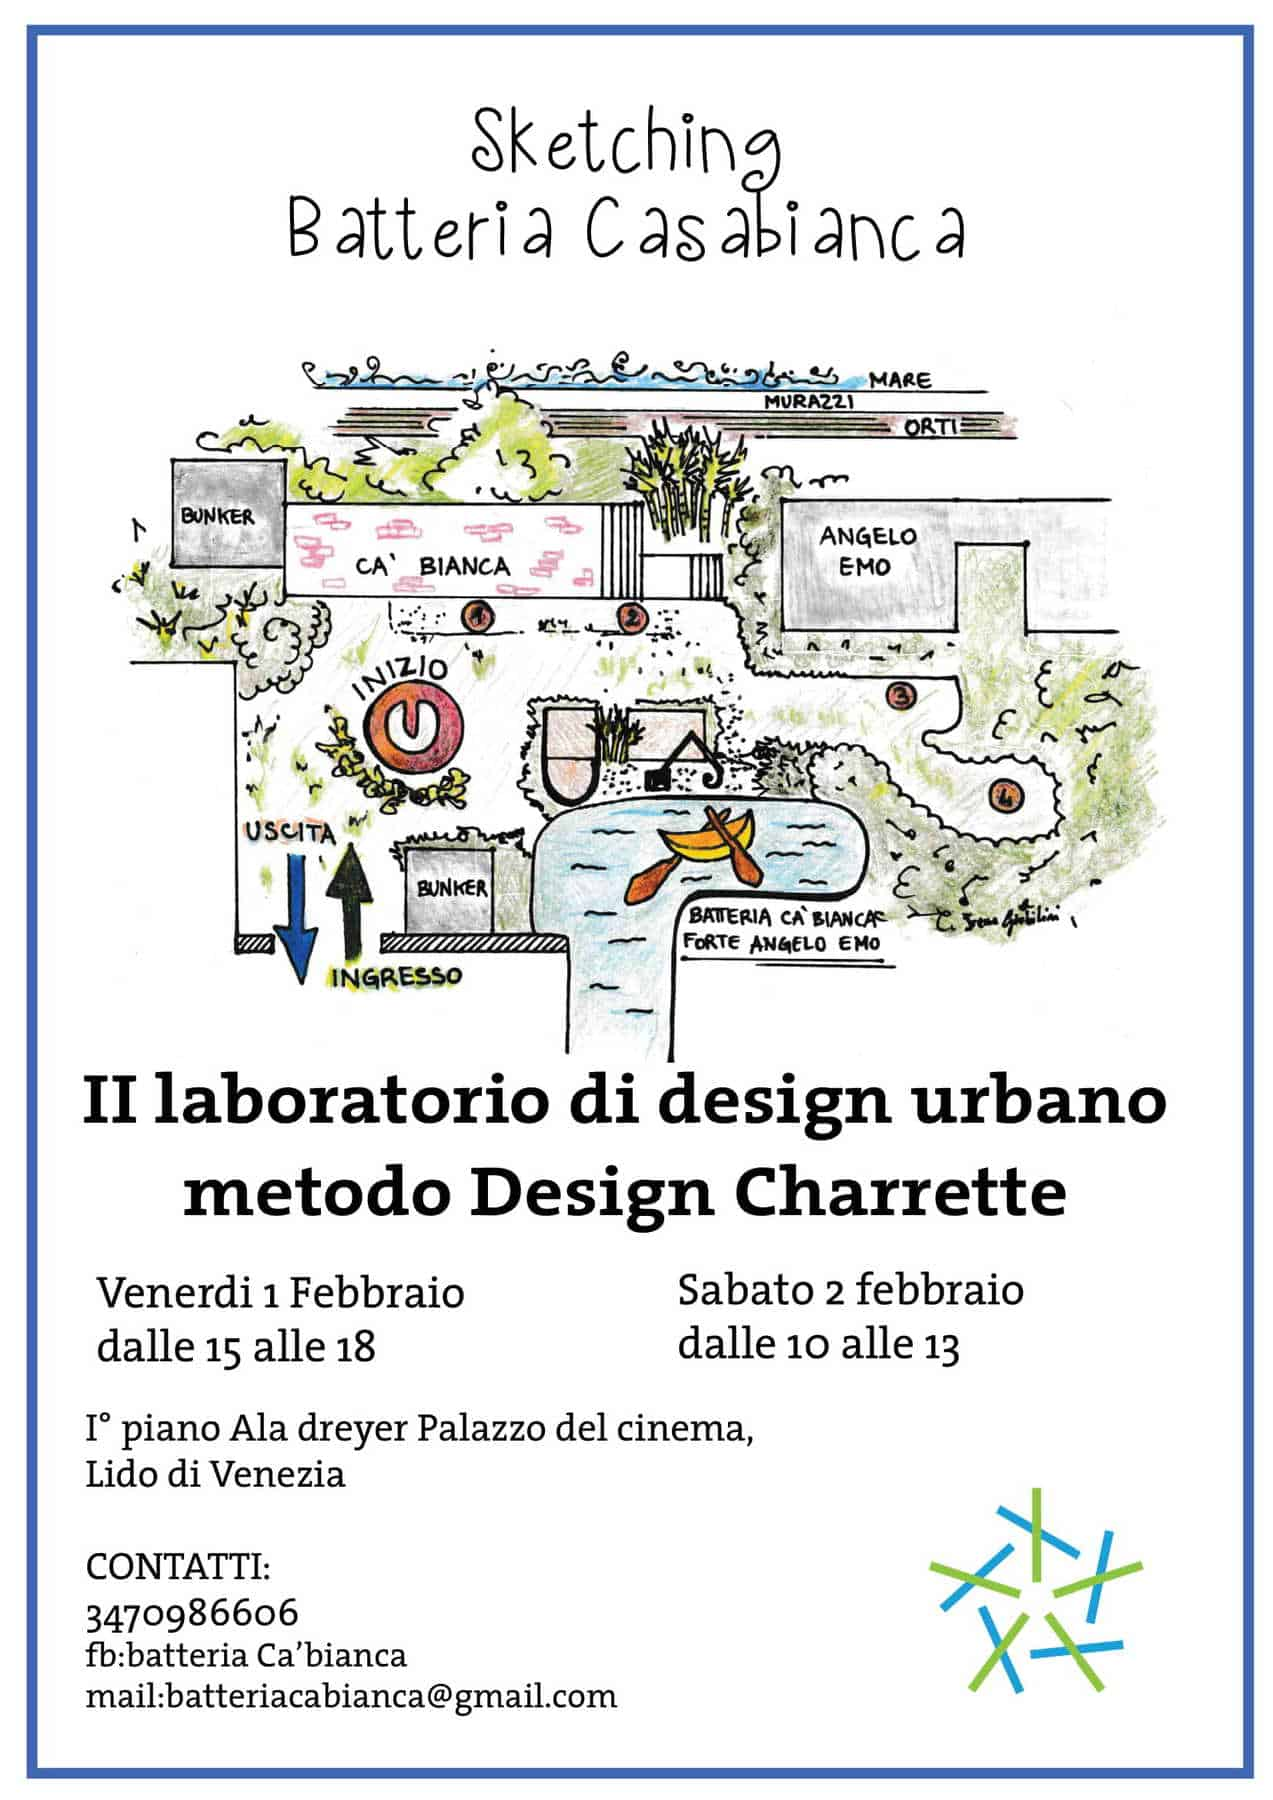 Sketching Batteria Casabianca: II laboratorio di design urbano